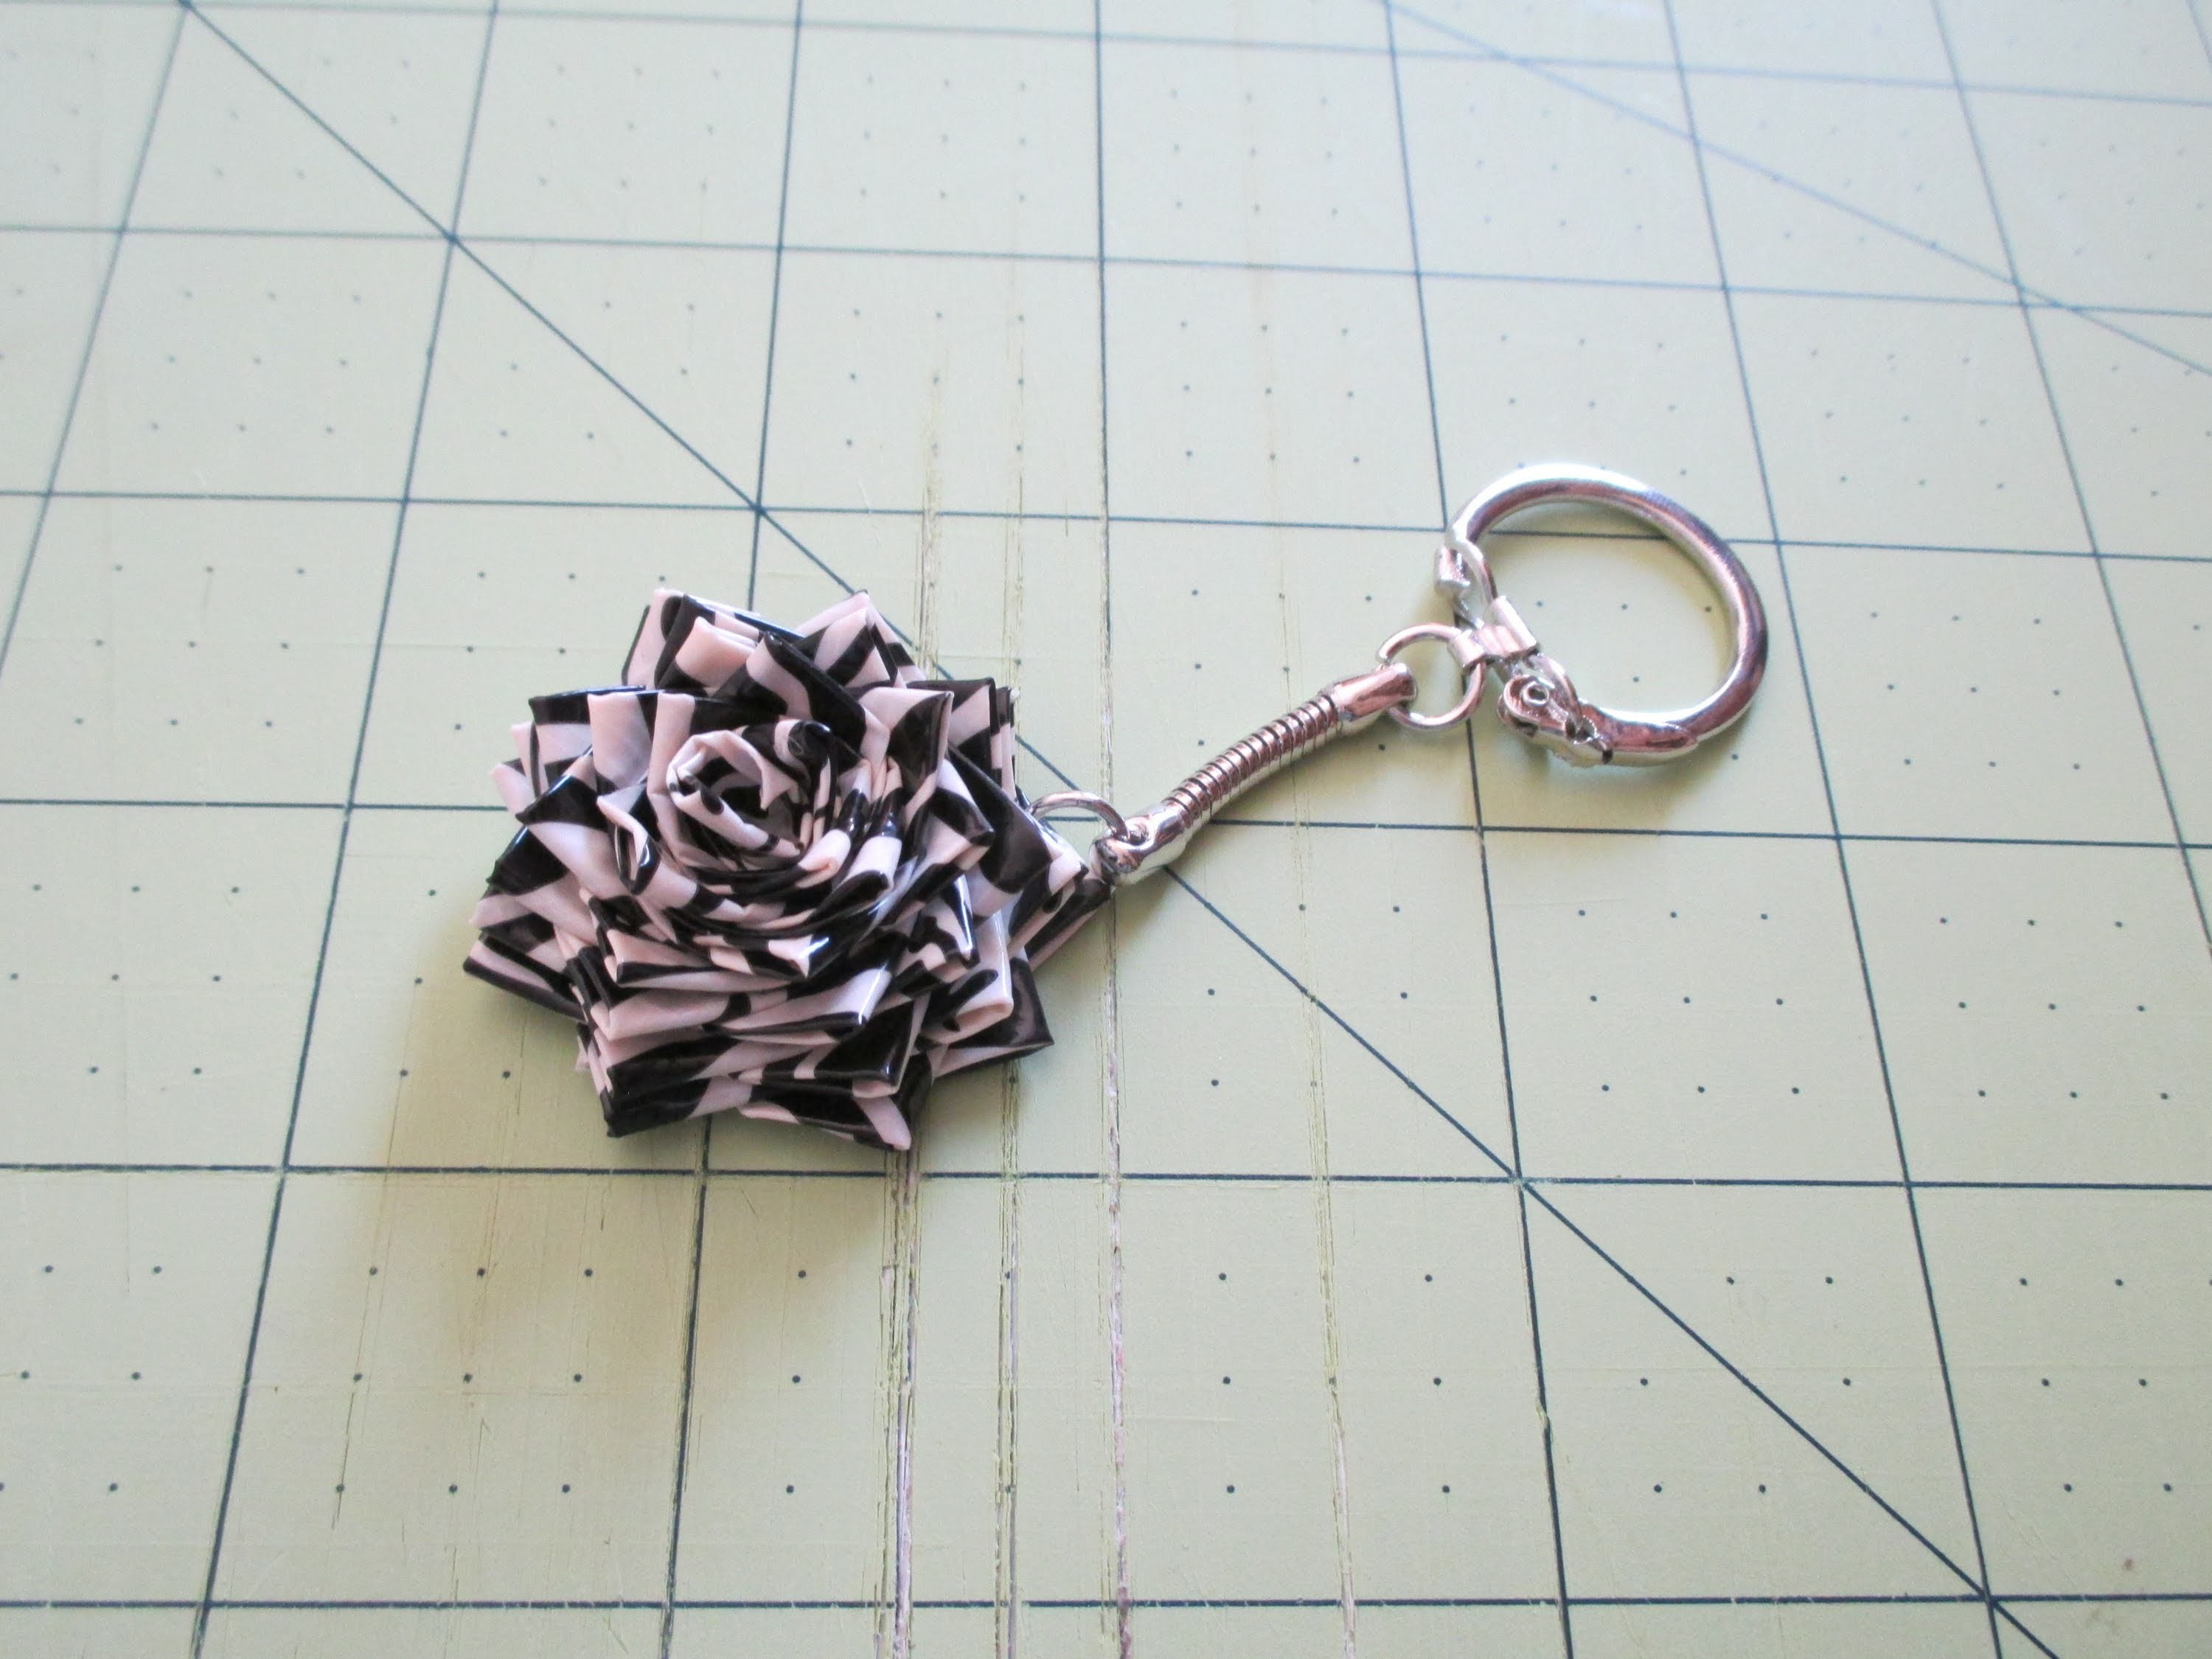 How to make a duct tape mini flower key chain!